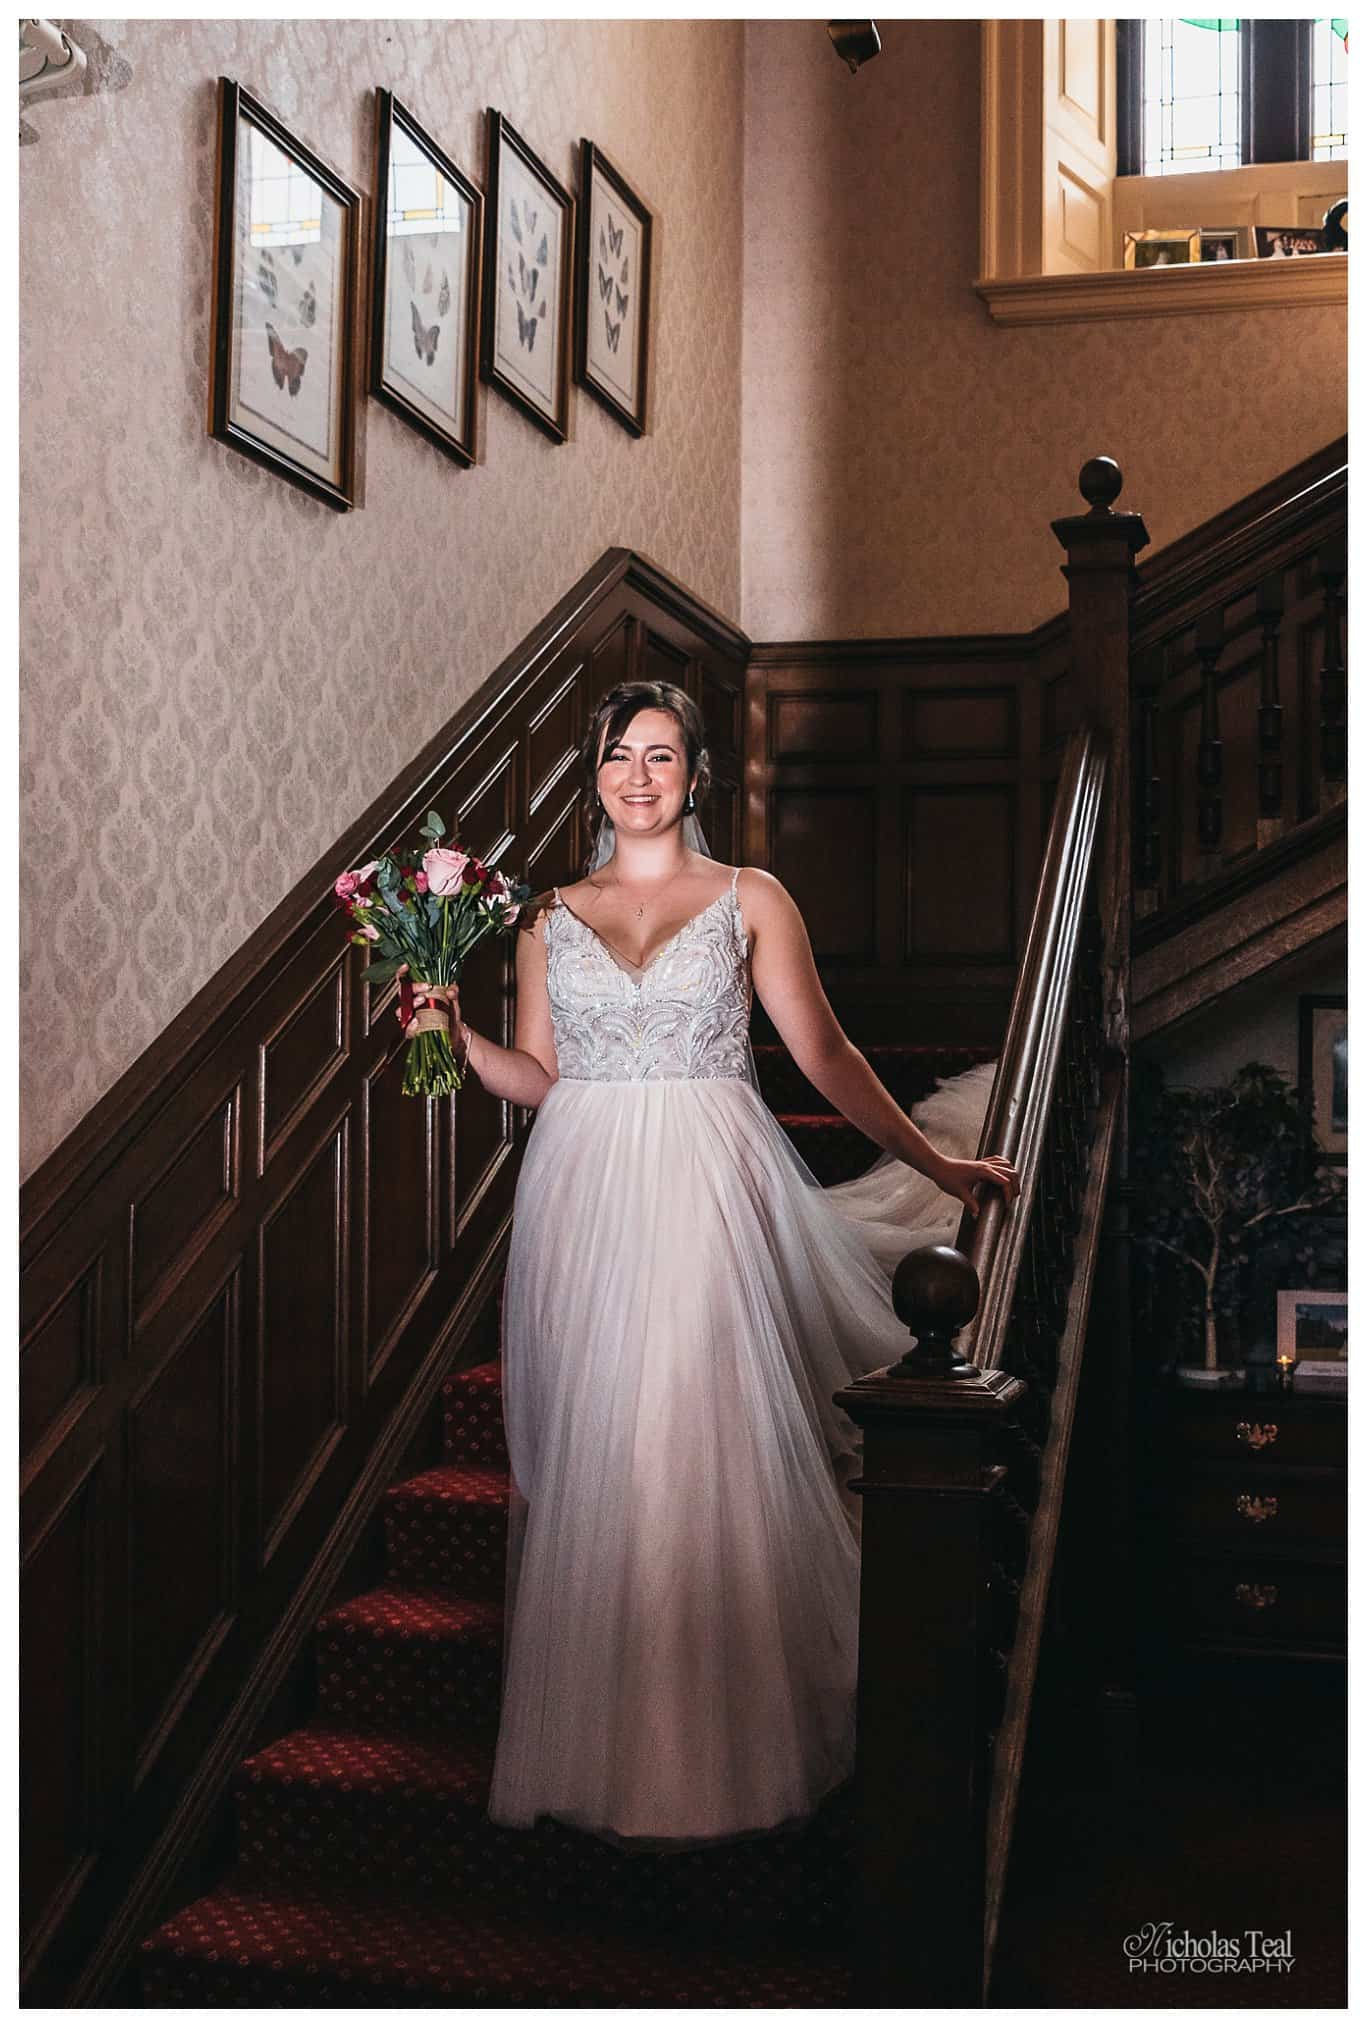 bride walking down the famous staircase at Bagden Hall with flowers in her hand